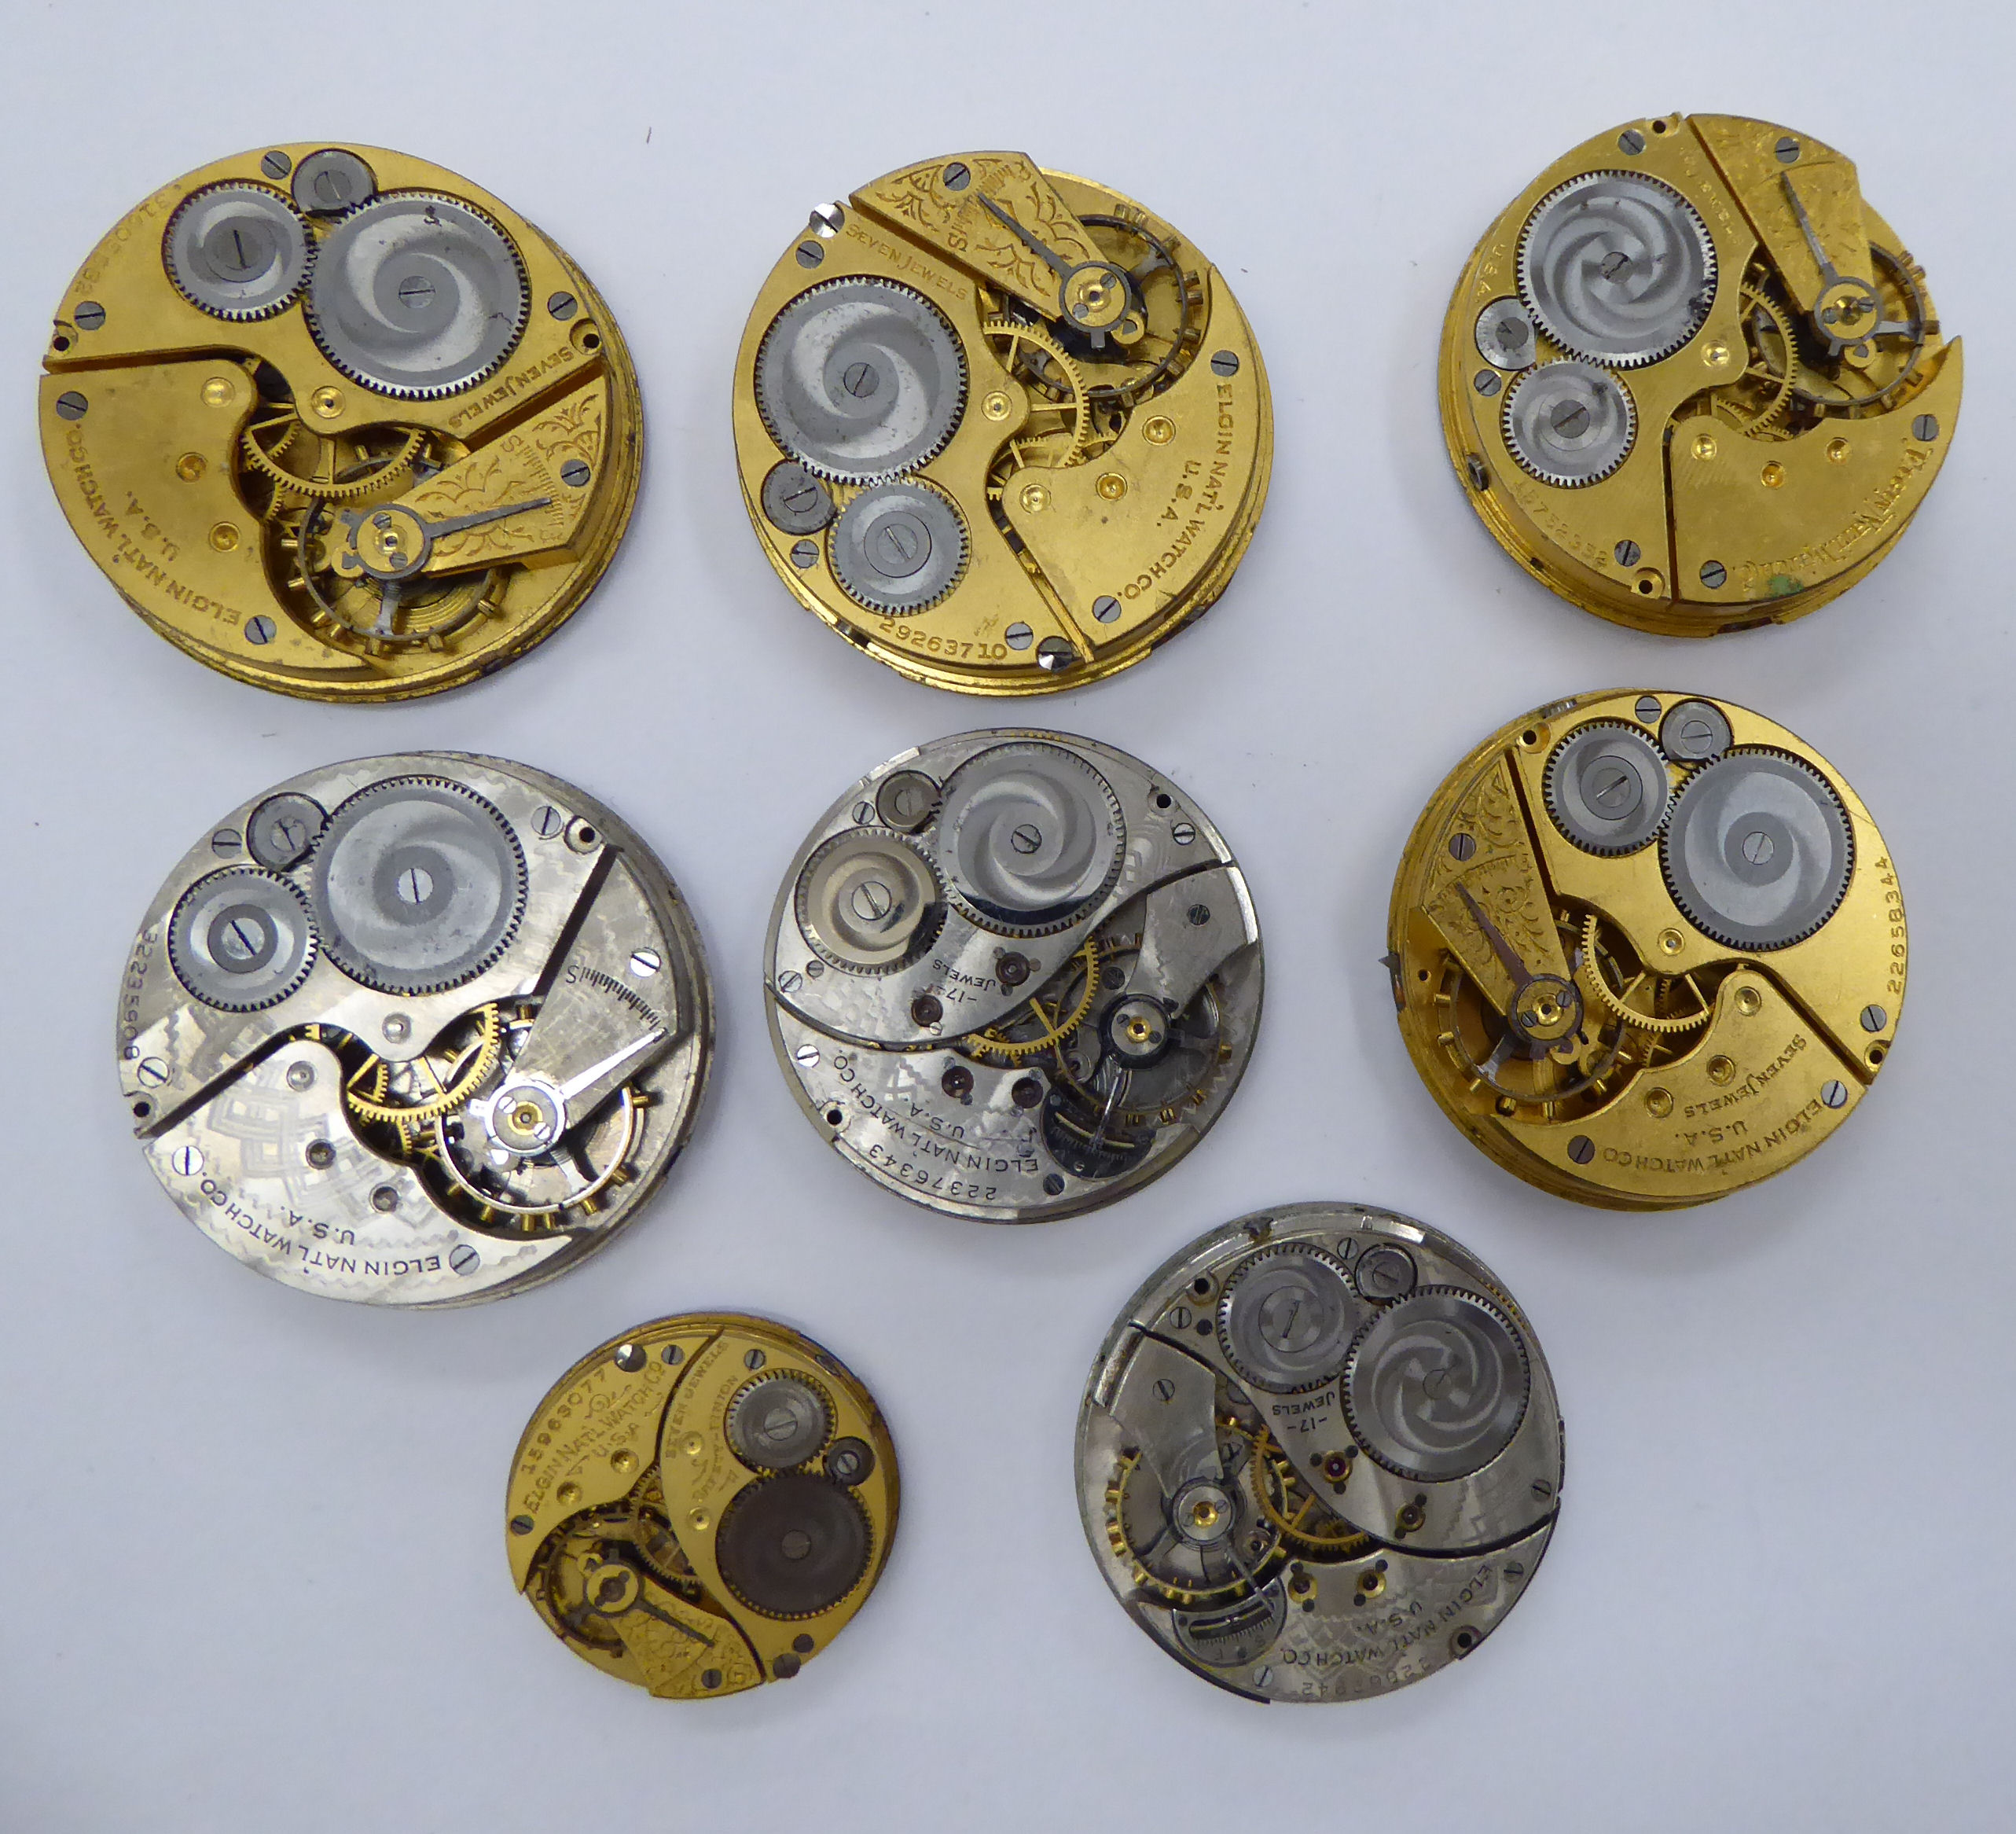 Lot 25 - Eight late 19th/early 20thC pocket watch movements,